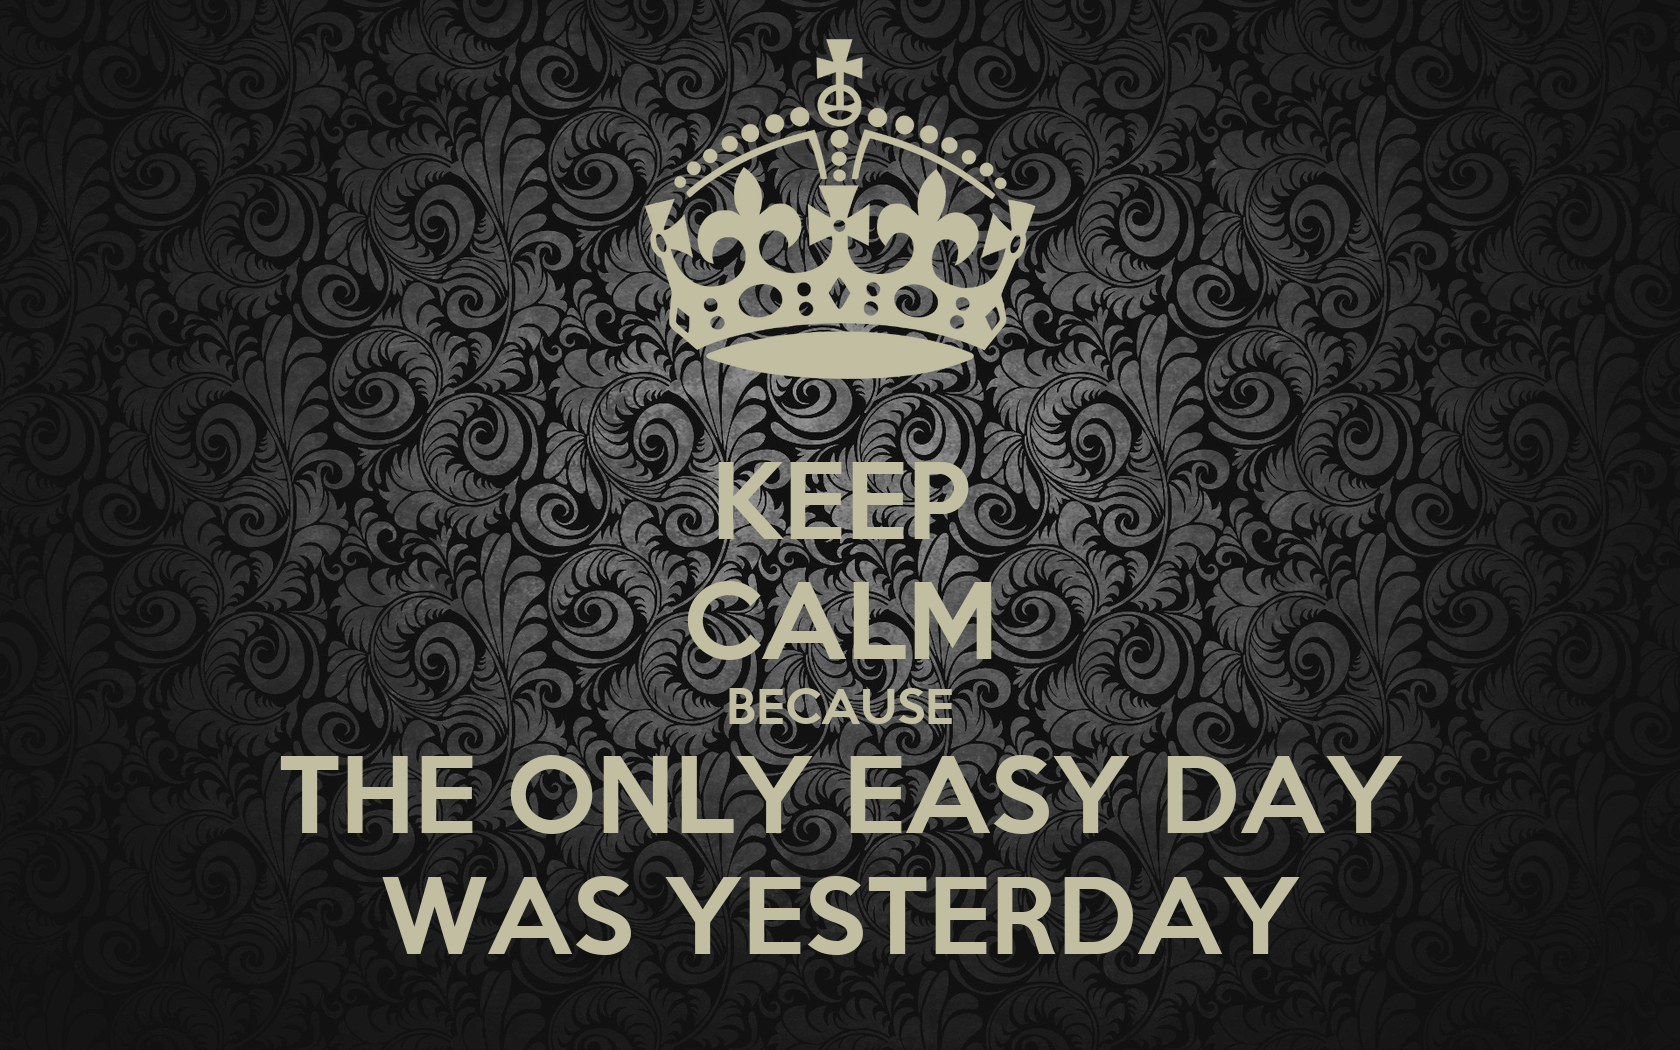 KEEP CALM BECAUSE THE ONLY EASY DAY WAS YESTERDAY - KEEP ...